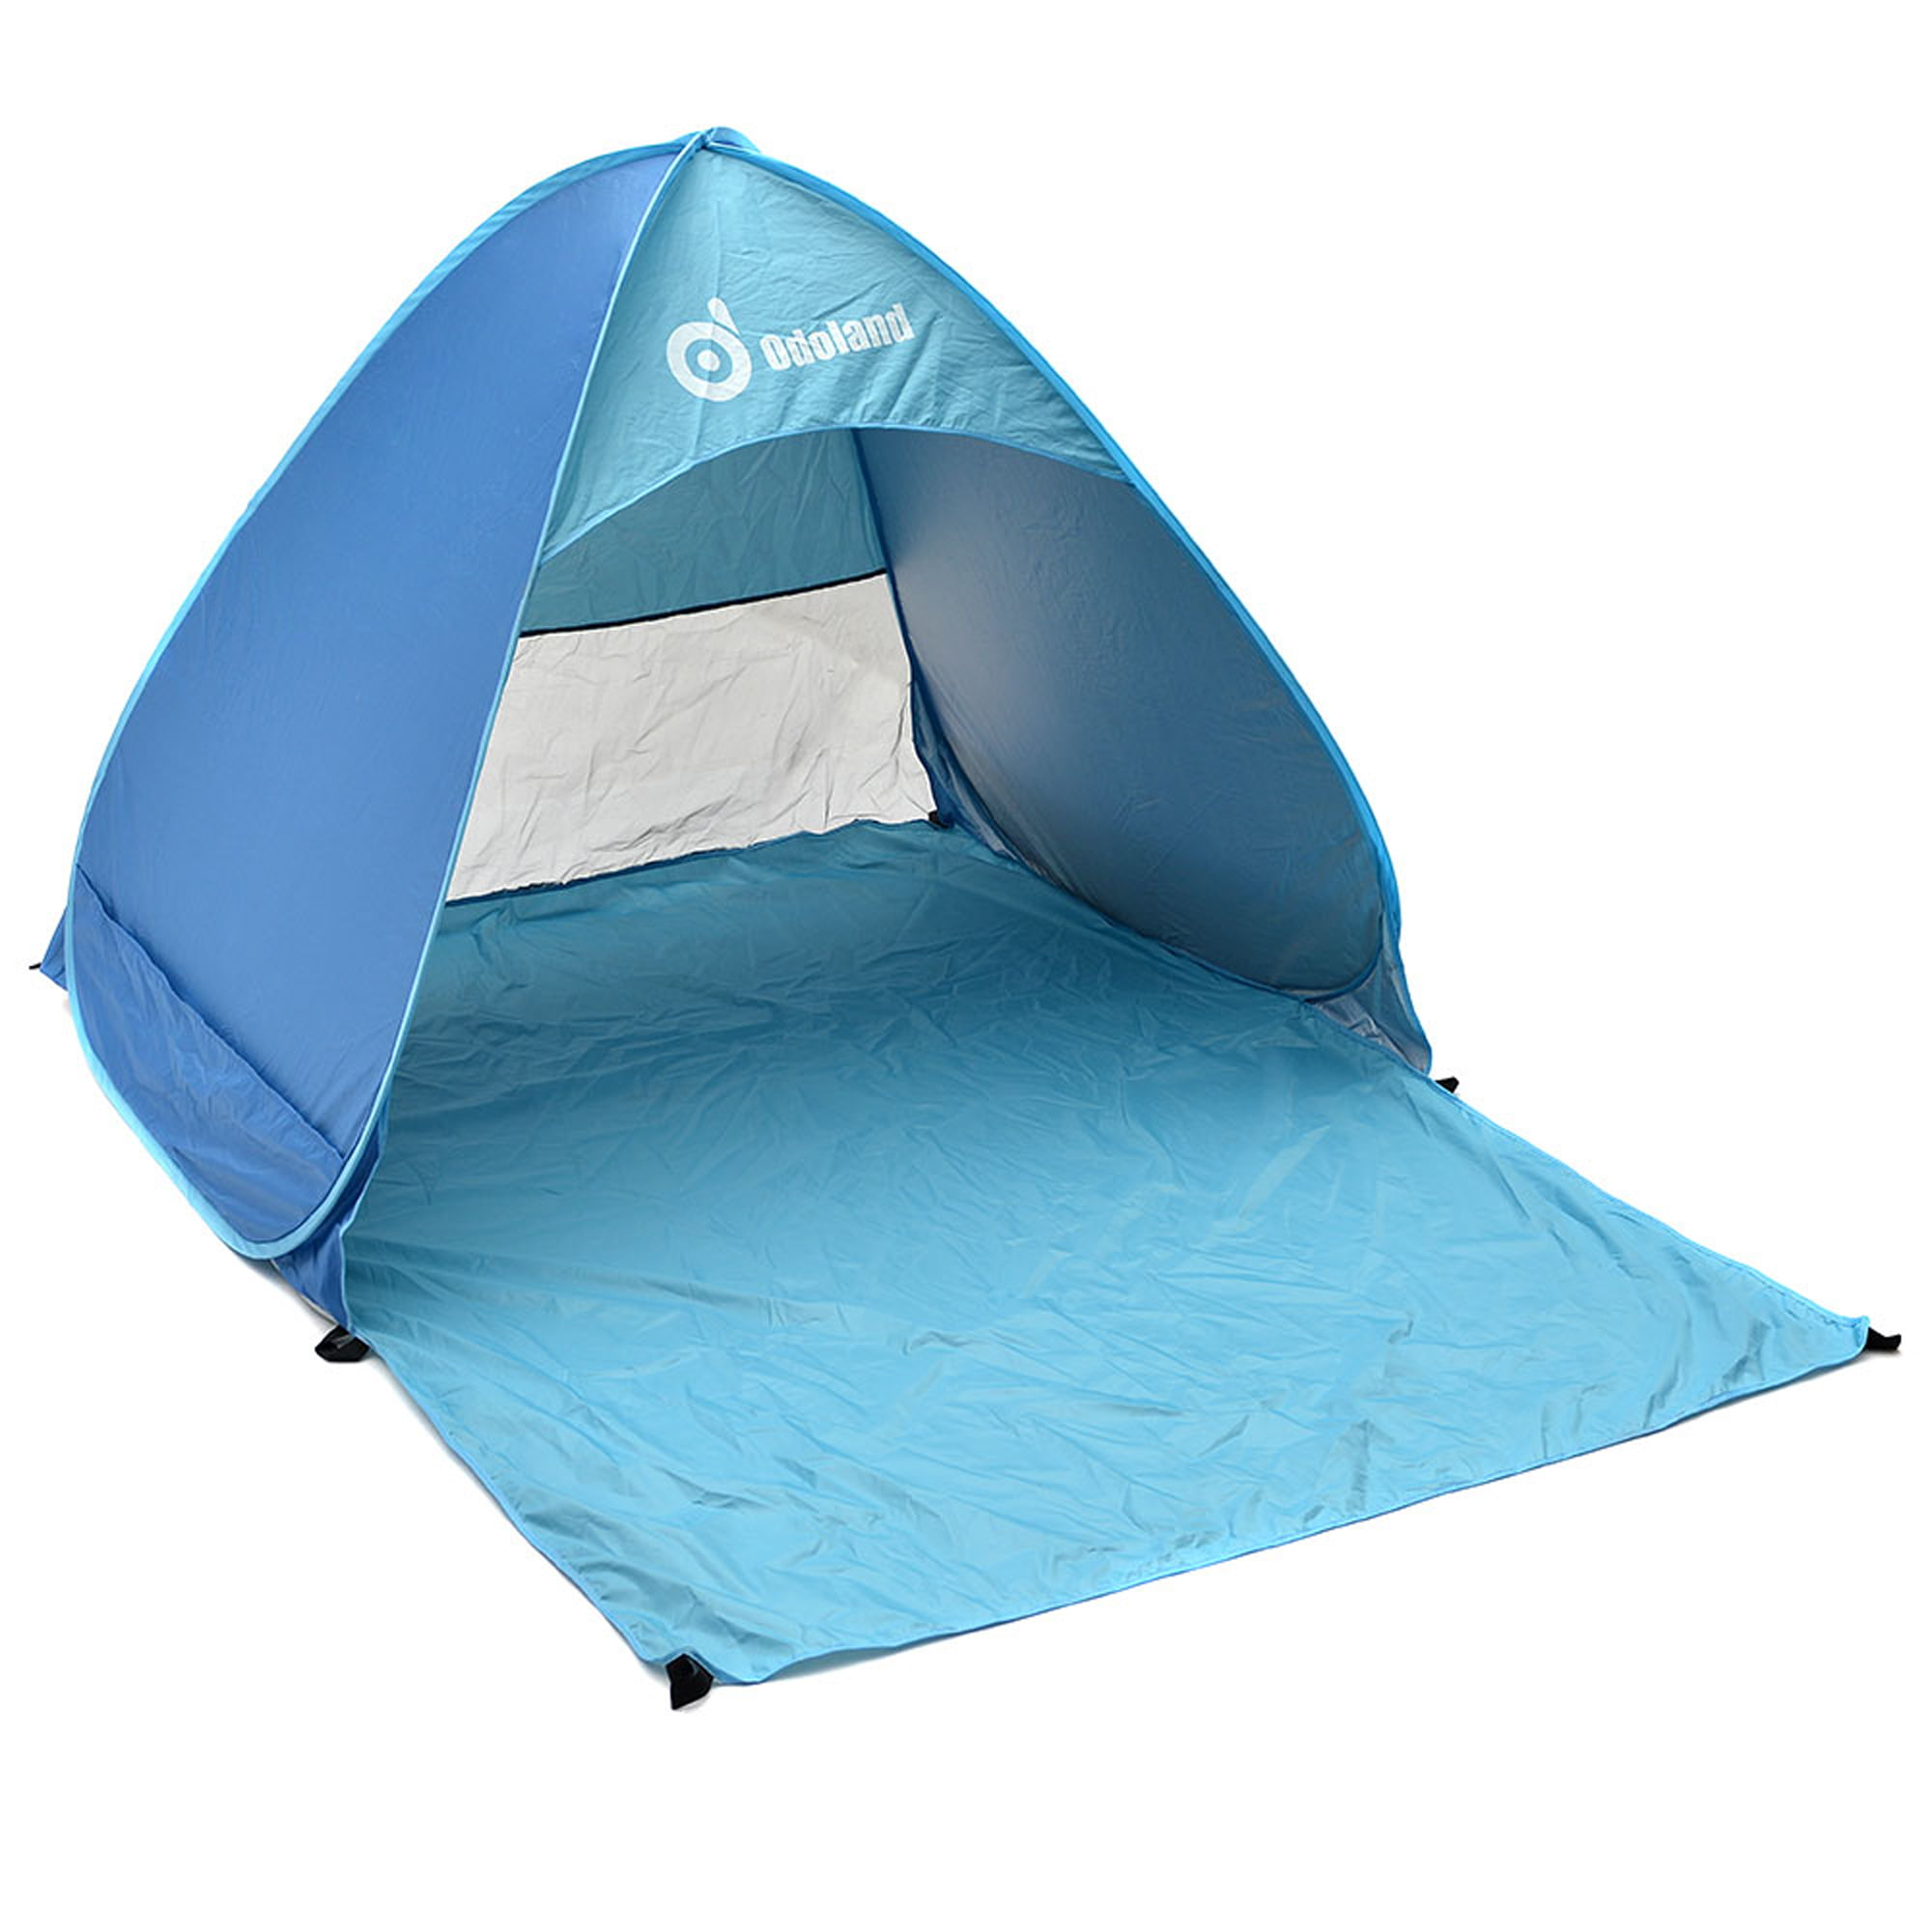 Instant Portable Outdoors Sunshade Basec& Folding Shelter Automatic Pop Up Cabana Beach Tent - Walmart.com  sc 1 st  Walmart & Instant Portable Outdoors Sunshade Basecamp Folding Shelter ...